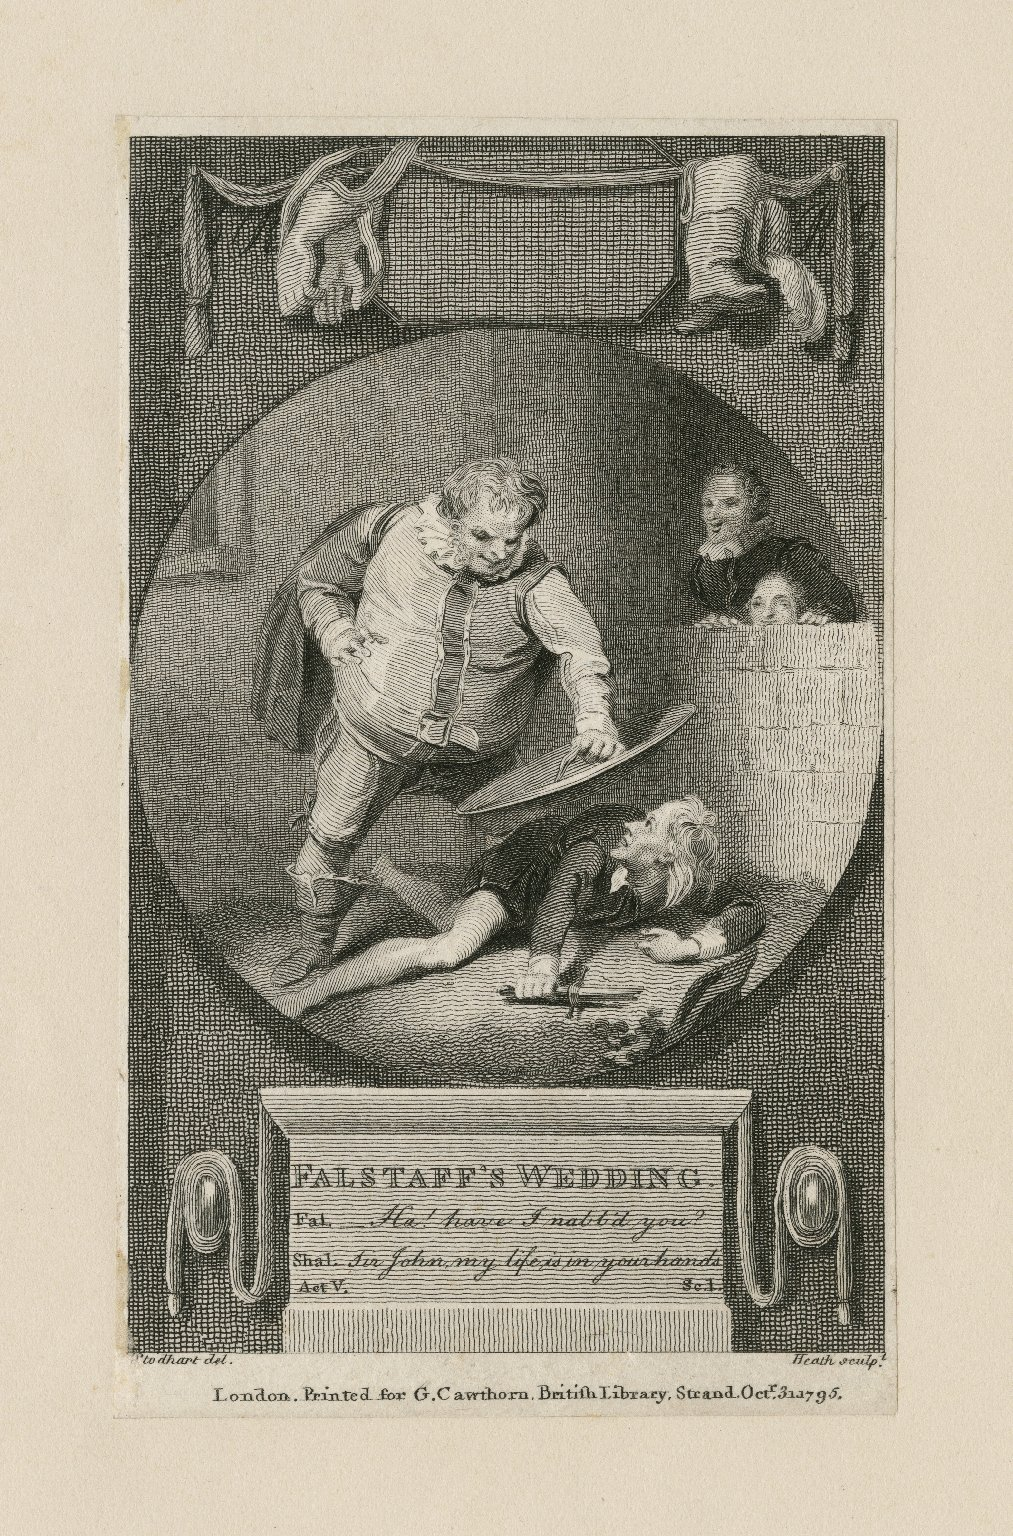 Falstaff's wedding, Fal.: Ha! have I nabb'd you? Shal.: Sir John, my life is in your hands, act. V, sc. 1 [graphic] / Stodhart del. ; Heath sculpt.